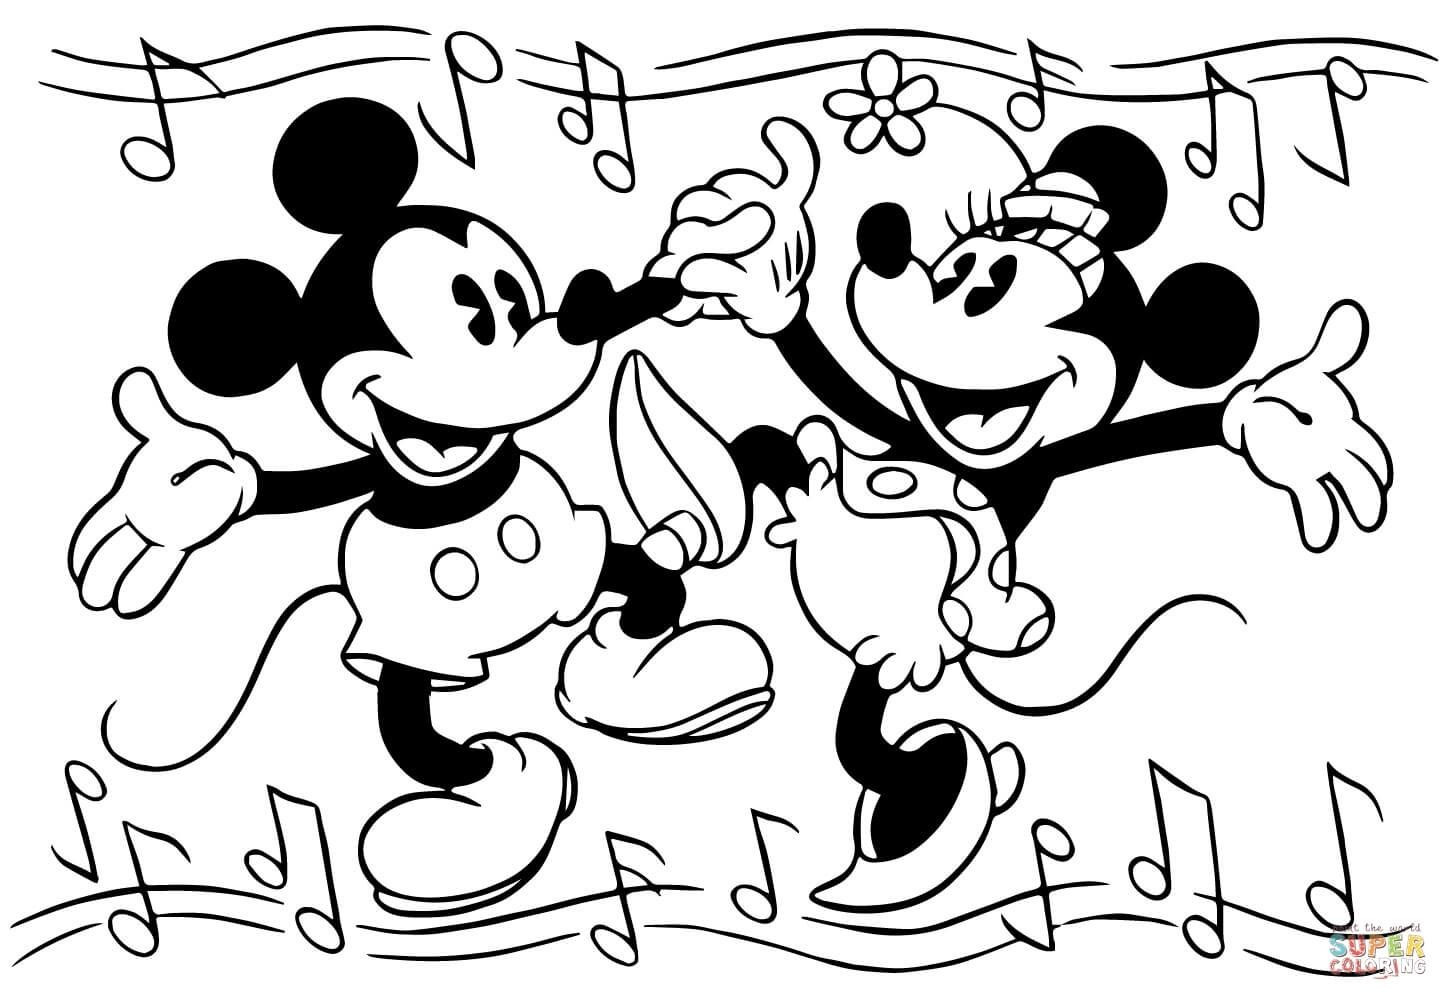 Mickey Mouse Music Coloring Pages Mickey Mouse Music Coloring Pages Mickey Mouse Coloring Pages Minnie Mouse Coloring Pages Mickey Mouse Drawings